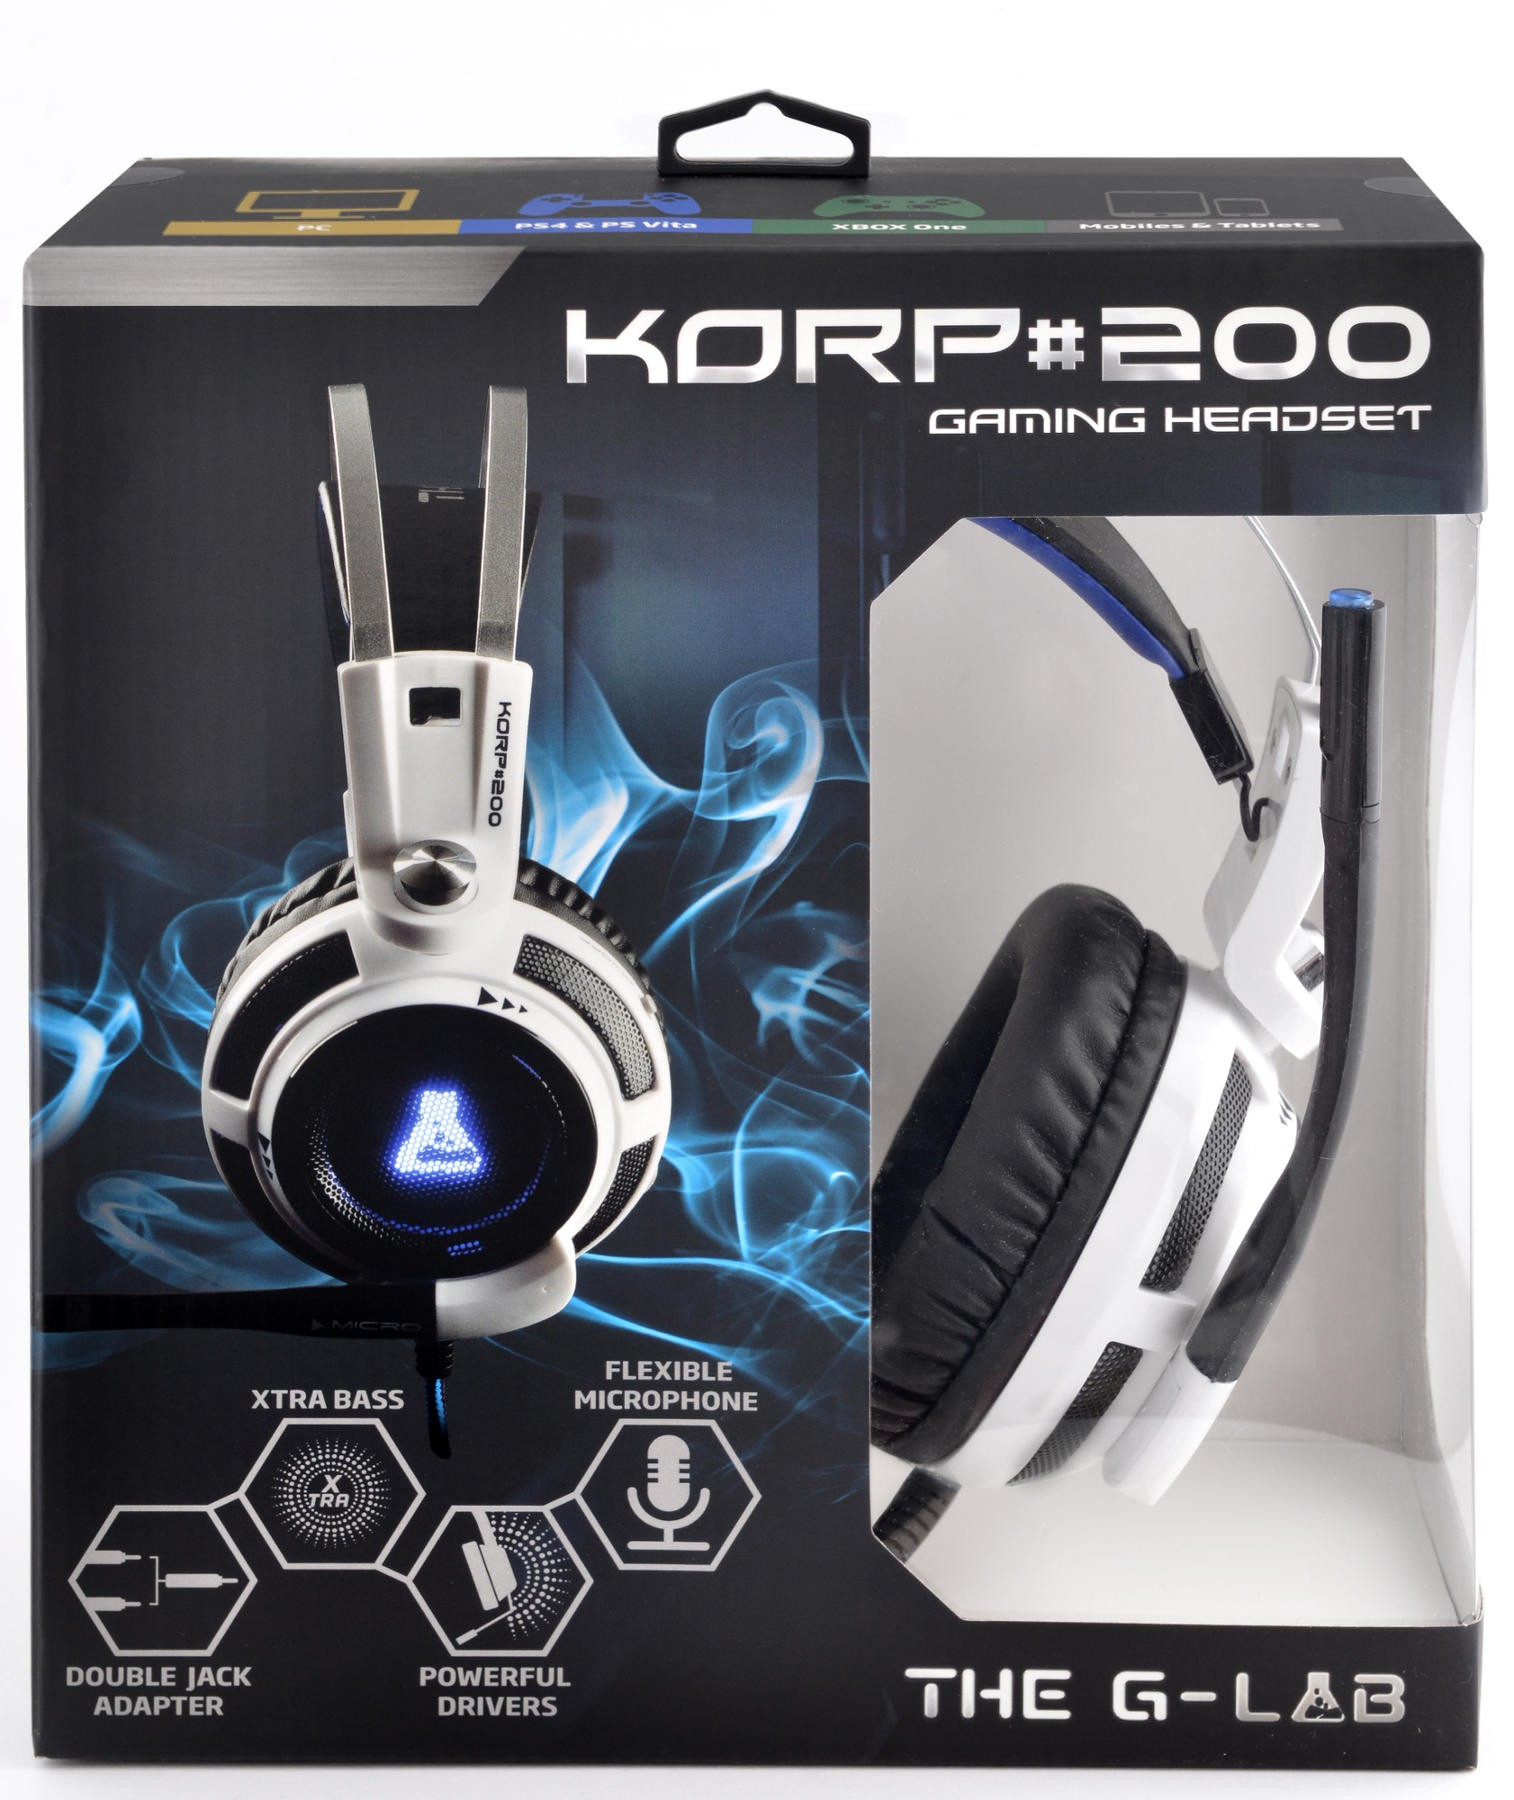 THE G-LAB - KORP 200